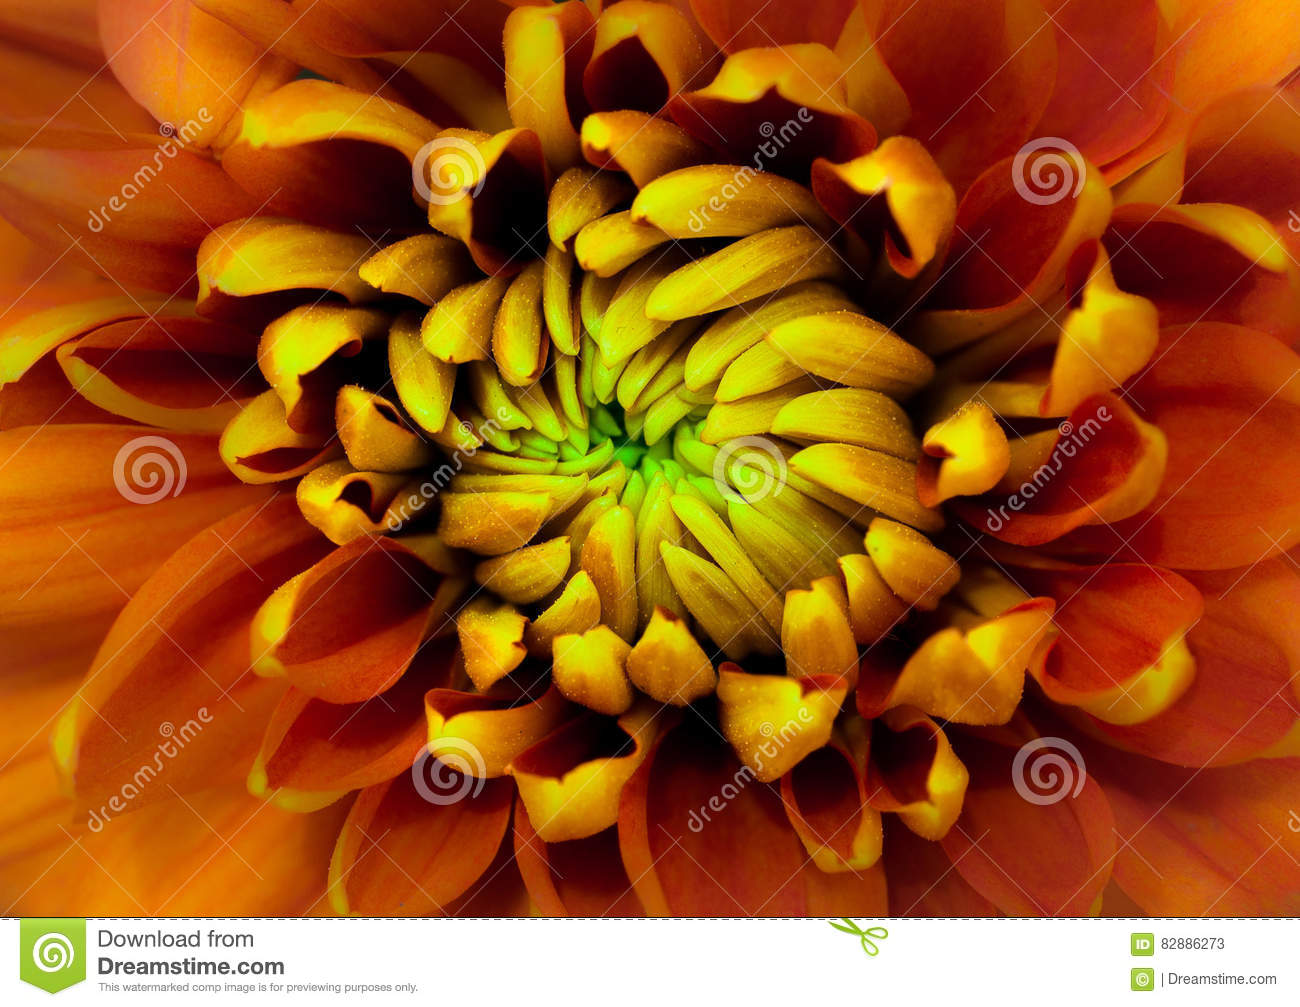 Orange Flower Close Up With Yellow And Green Center Petals Stock